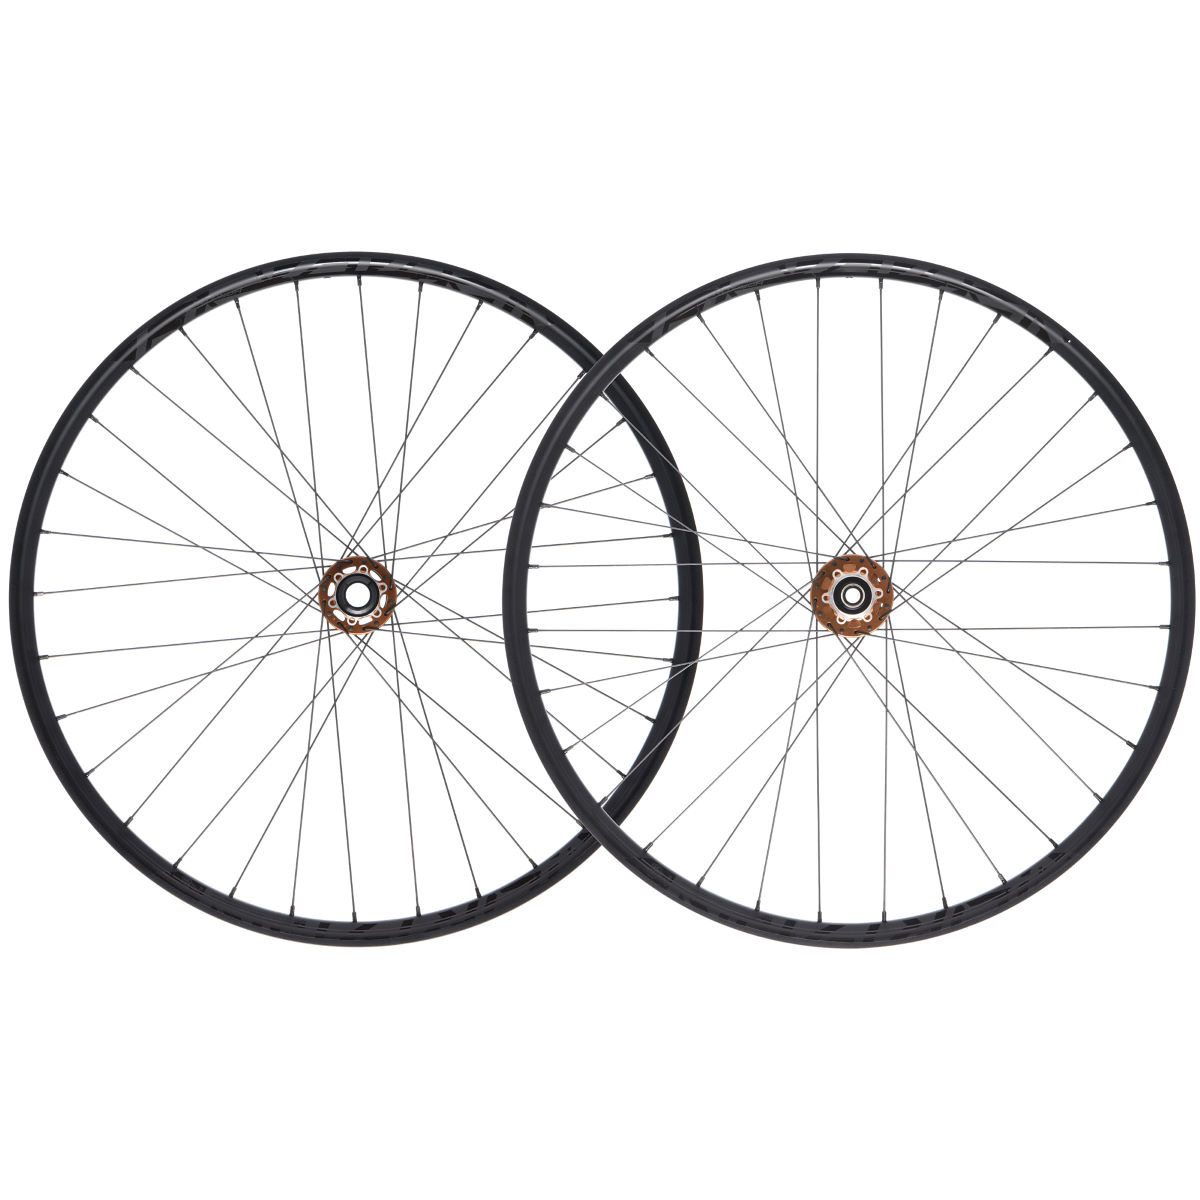 Nukeproof Nukeproof Horizon V1 MTB Wheelset - Black / Copper   Wheel Sets